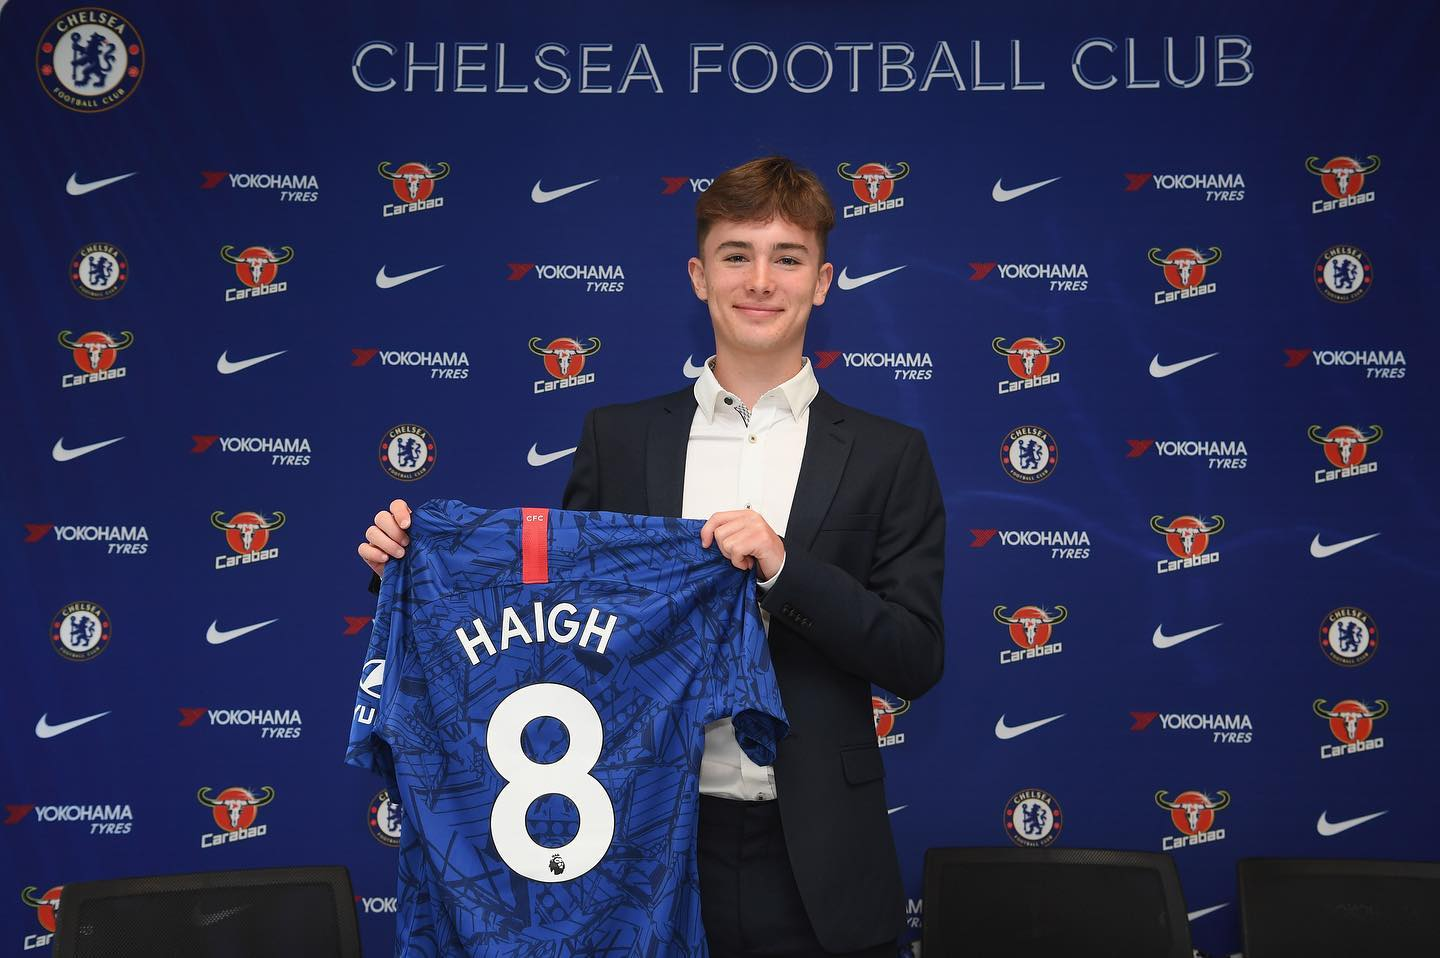 Rising ballers - exclusive interview with Joe Haigh